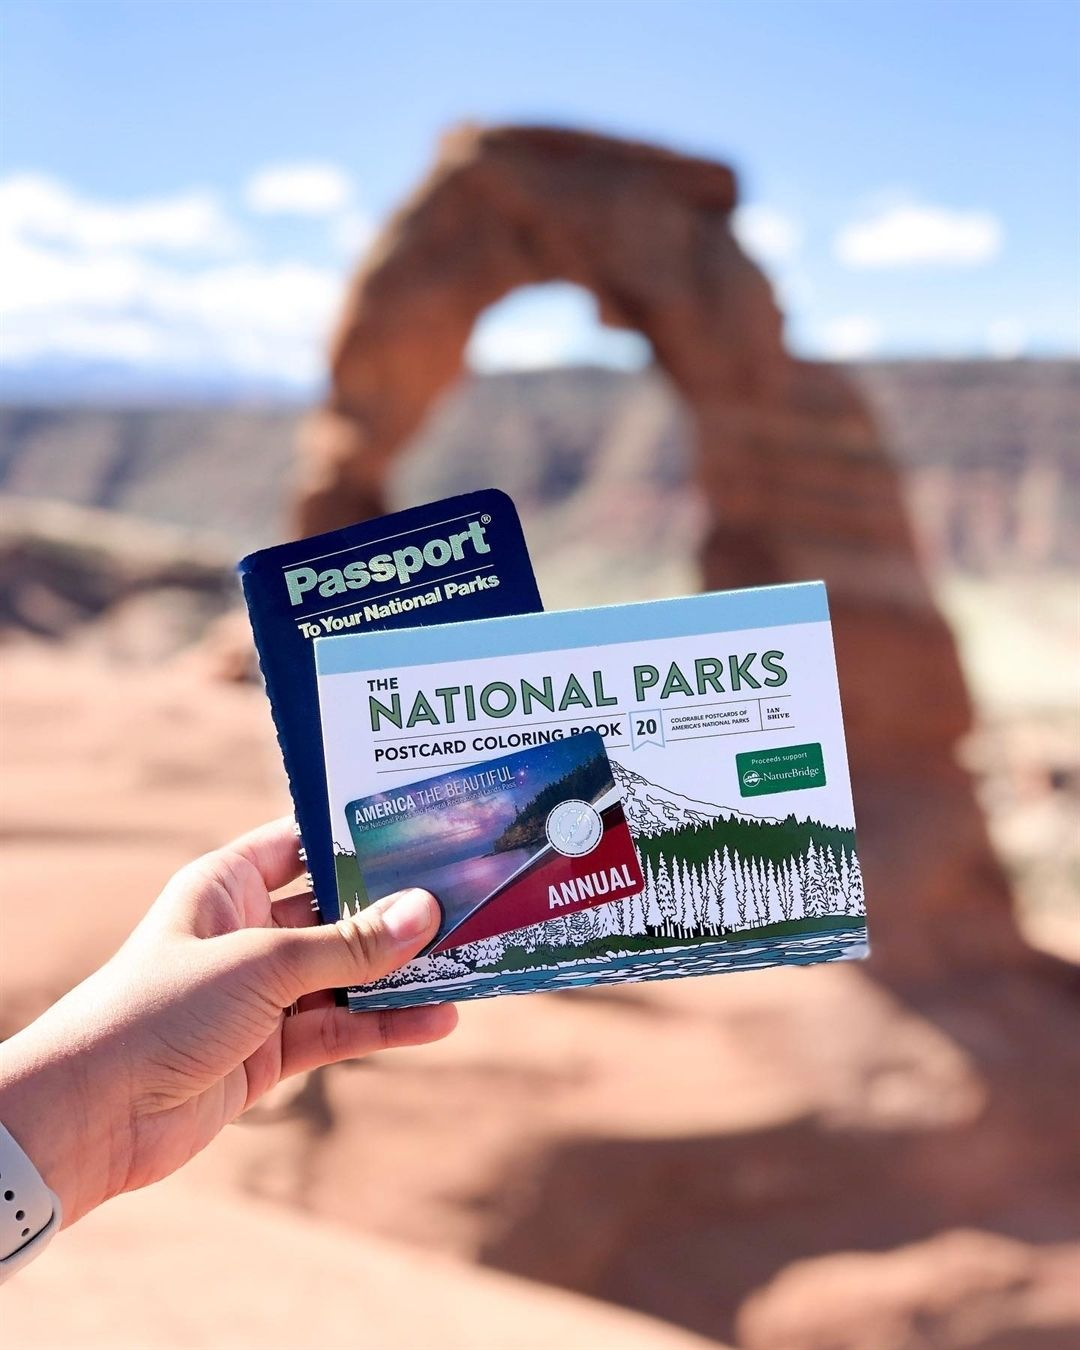 It S Giveaway Time We Are Giving Away Two National Parks Annual Pass Two National Park Passports And Two National Park Passport National Parks Giveaway Time